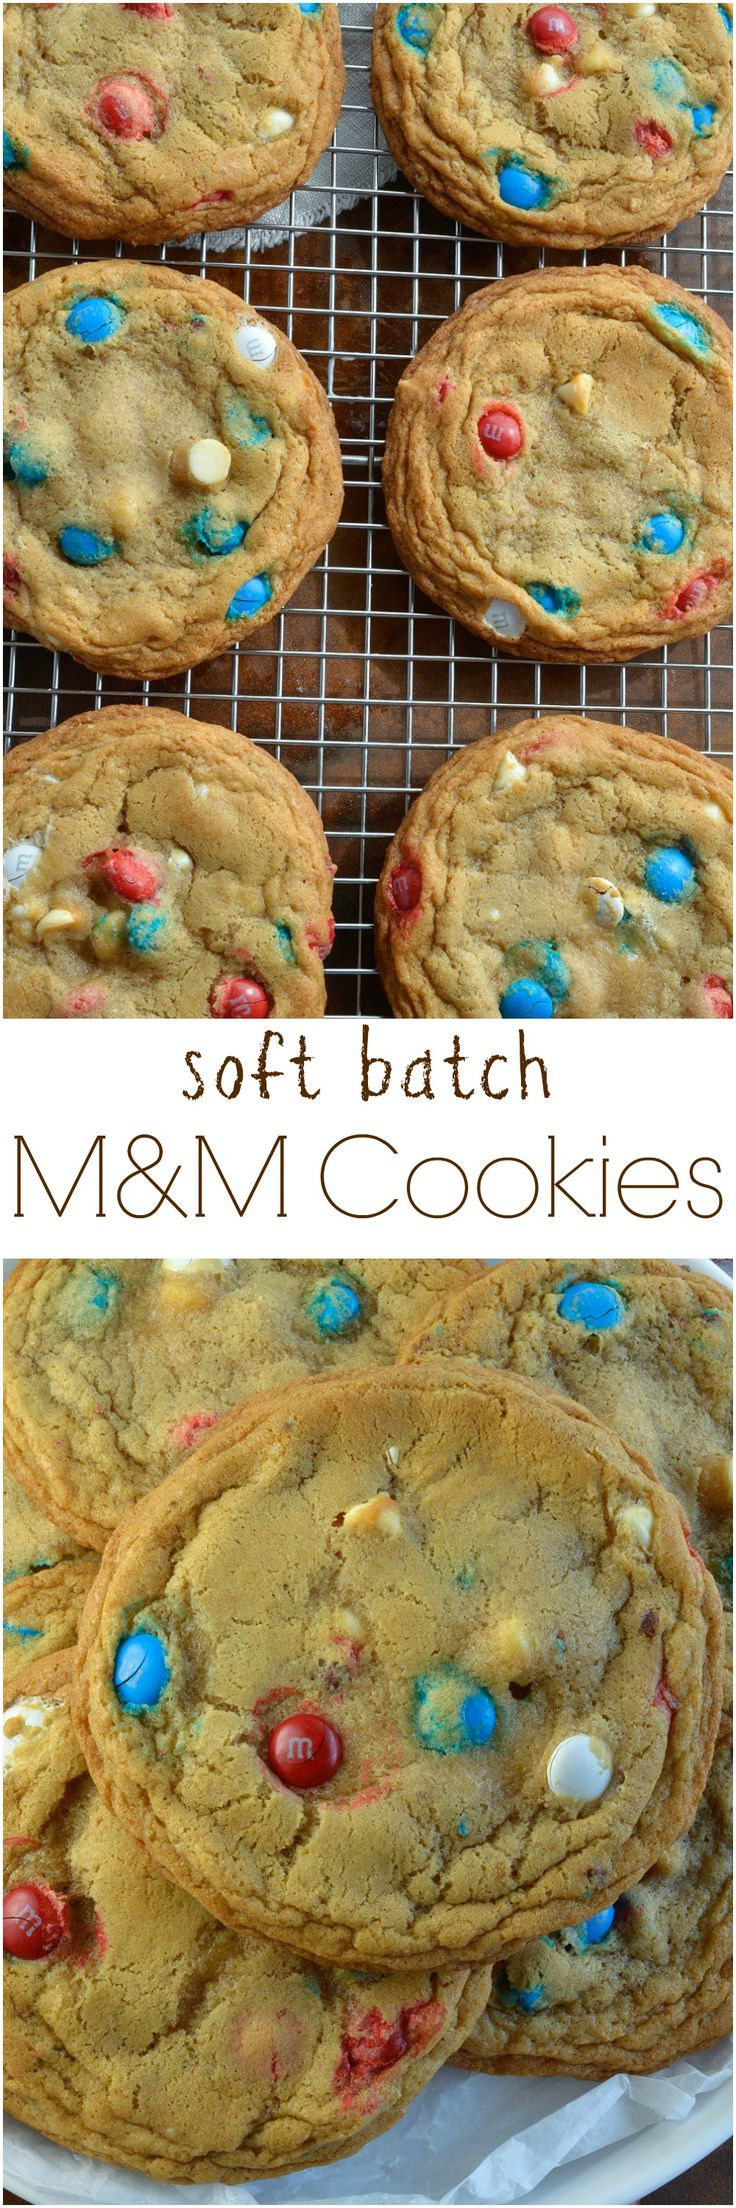 Soft Chocolate Chip Cookies Recipe with M&M's and white chocolate chips. These soft batch cookies are moist, chewy and loaded with Red White and Blue M&M's! #pressnsealhacks #Pmedia #ad @gladproducts @walmart